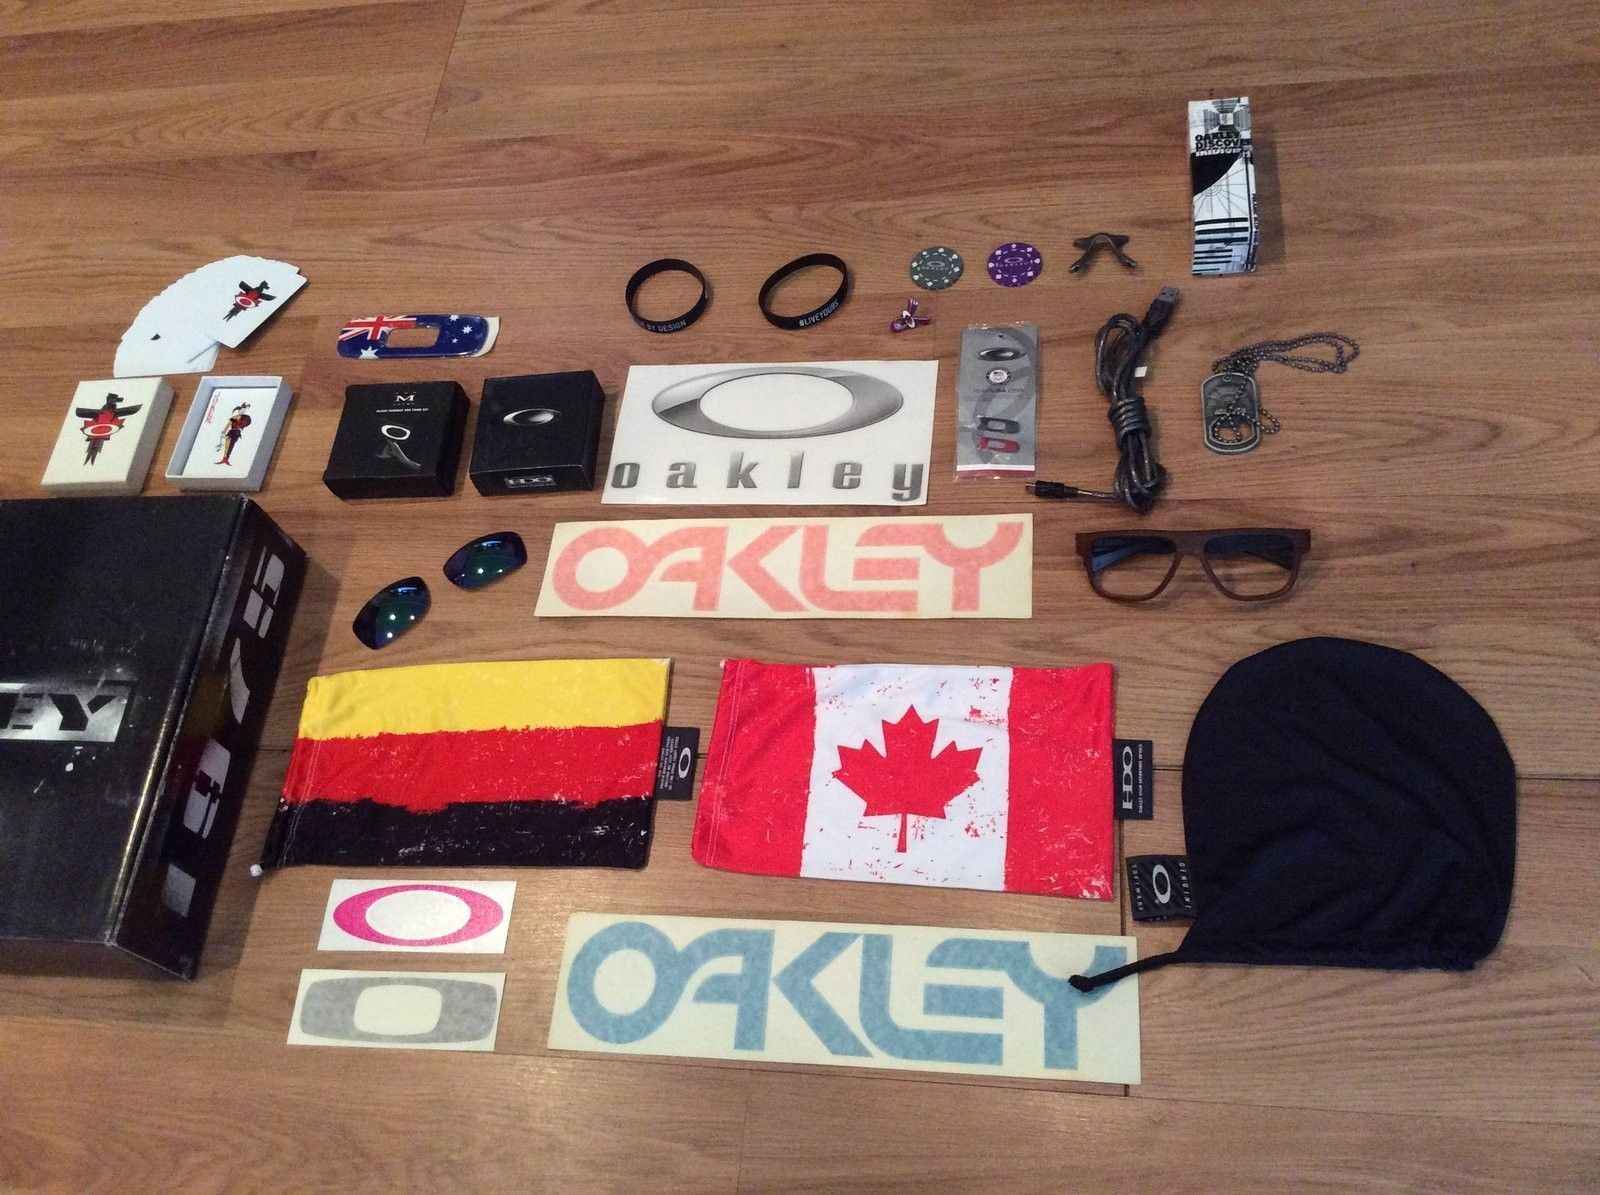 Oakley Display Items and Kit $150 Shipped - image.jpeg